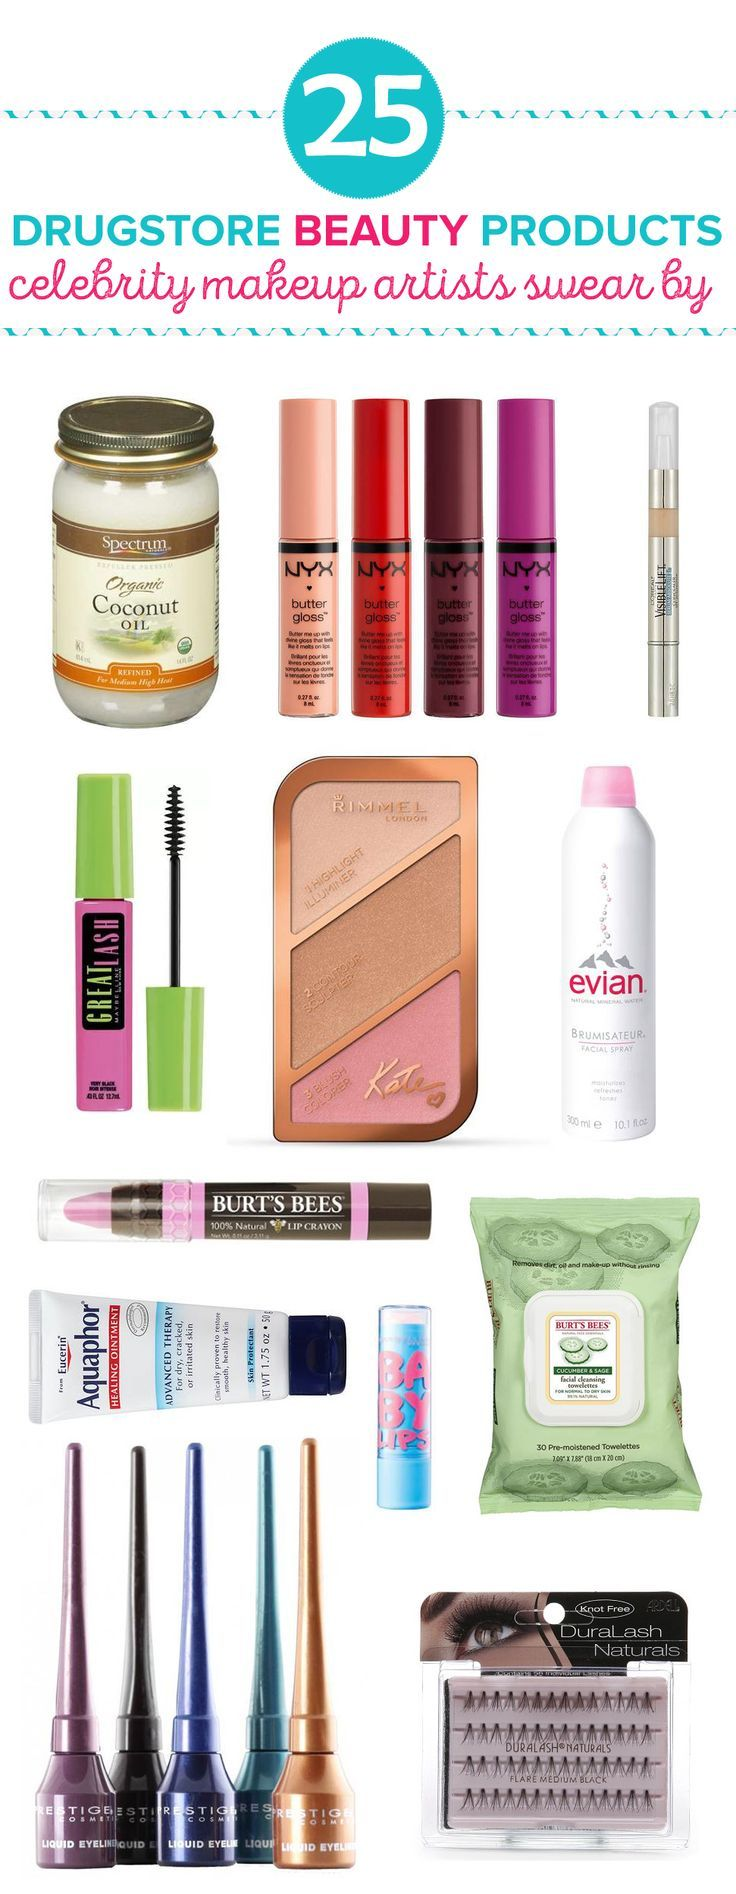 From makeup to skincare, these are 25 drugstore beauty products that celebrity makeup artists think really work. They're so affordable.